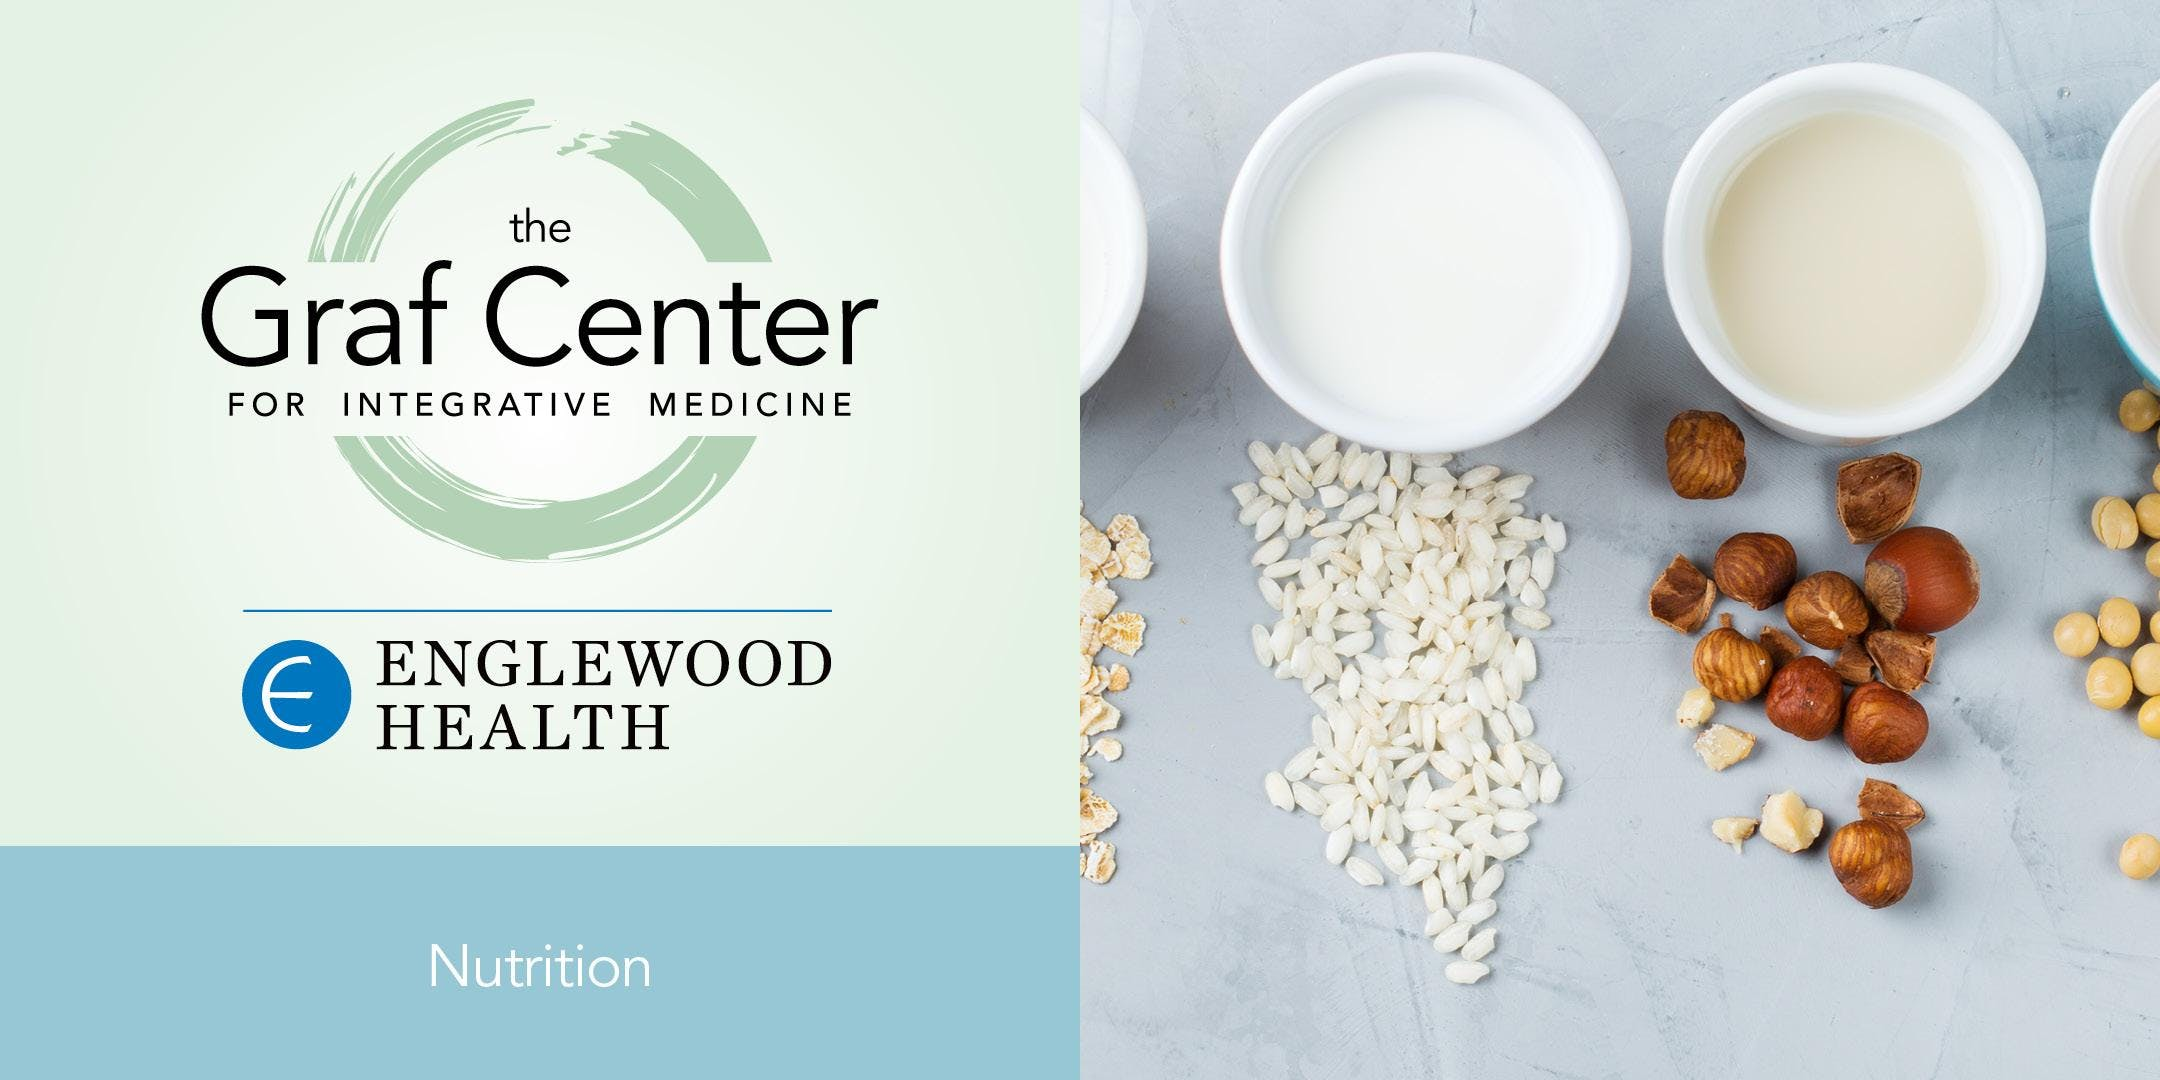 More info: Whole Foods Market Tour - Alternatives to Dairy